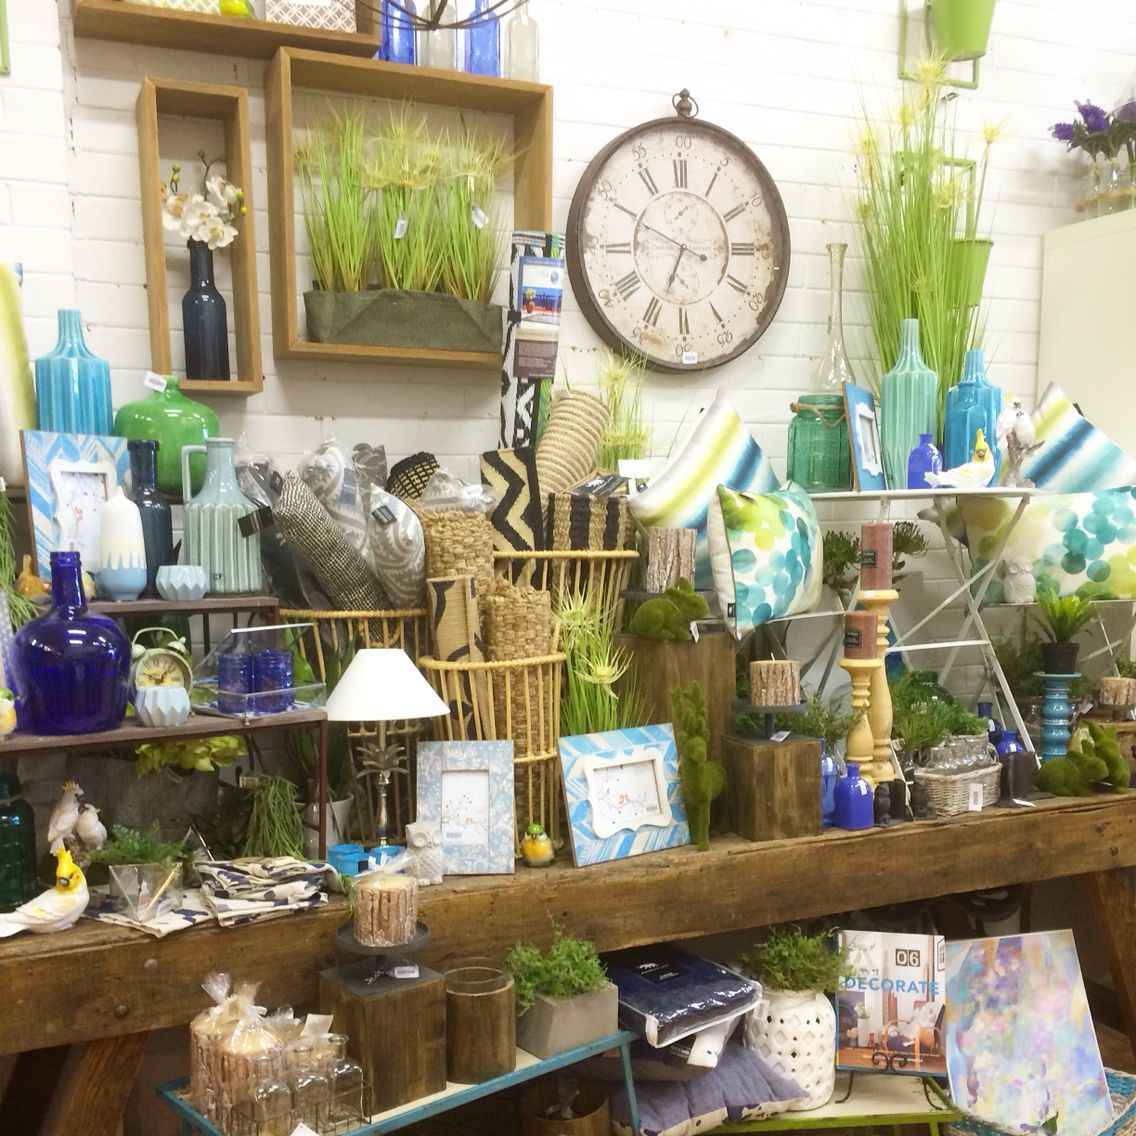 Home Decor Shop Design Ideas: Blues, Lime, Green And Navy Shop Display, Visual